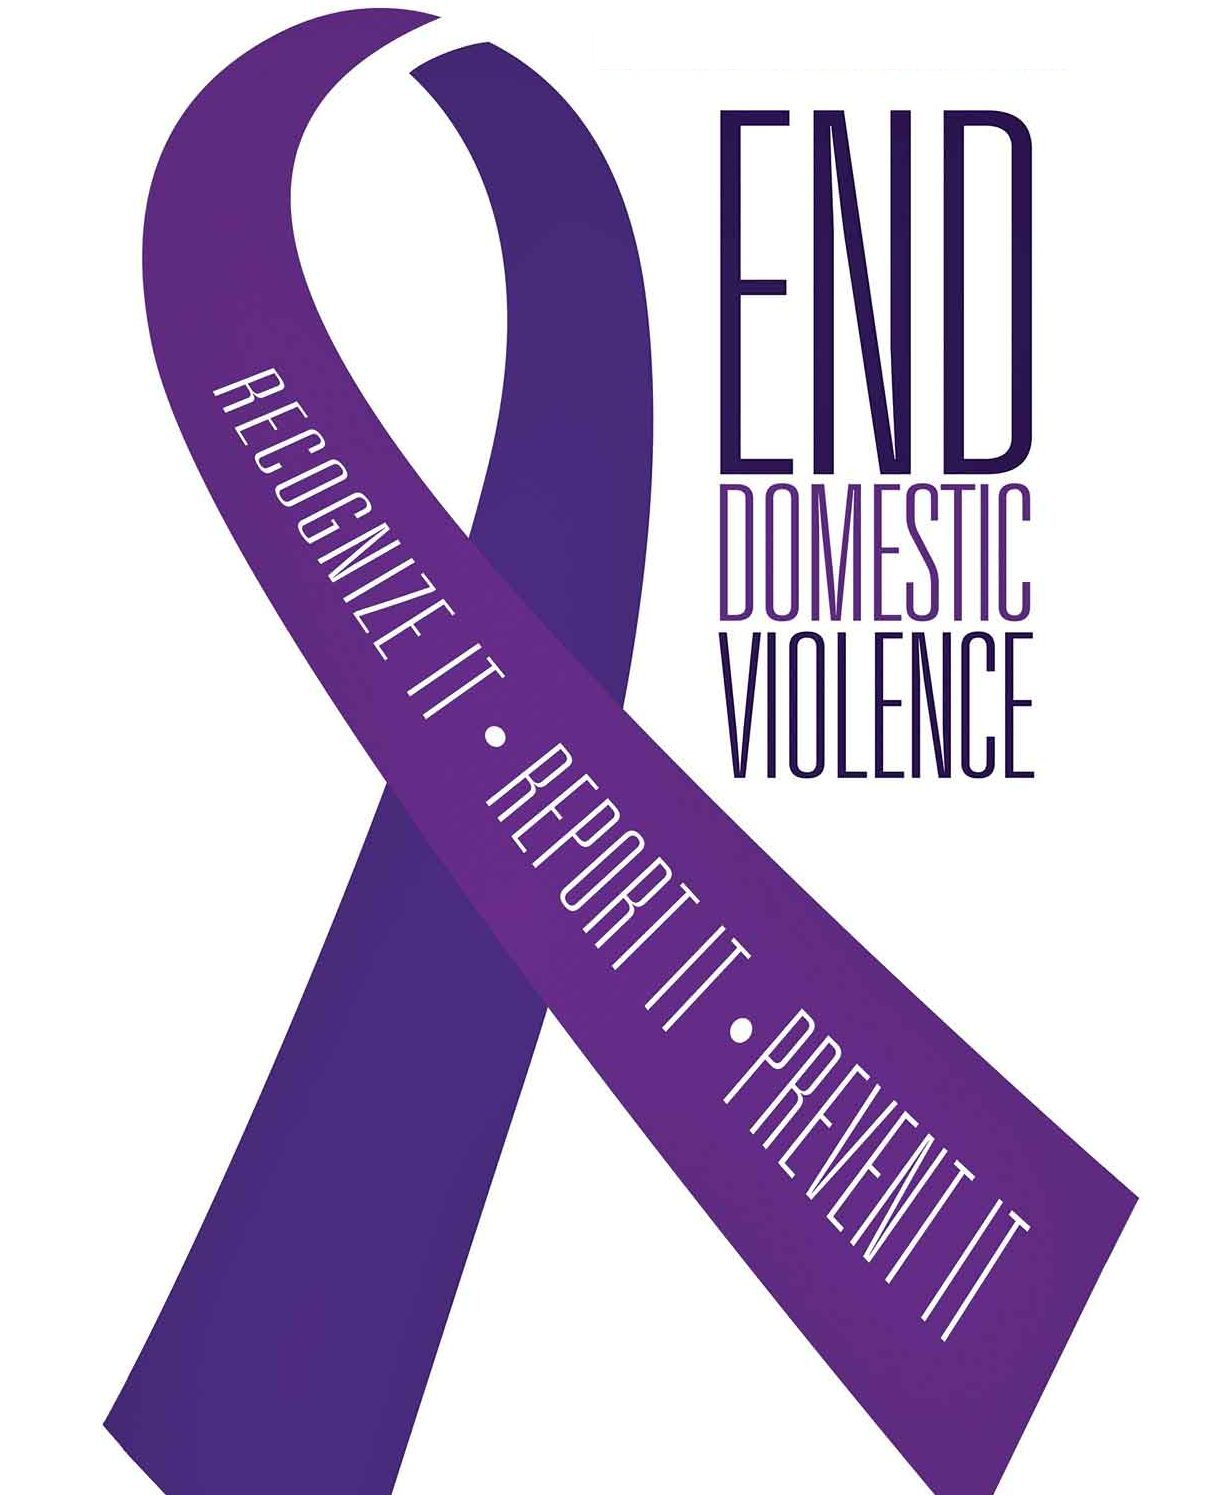 Domestic Violence Content: Division Of Public Safety & Security